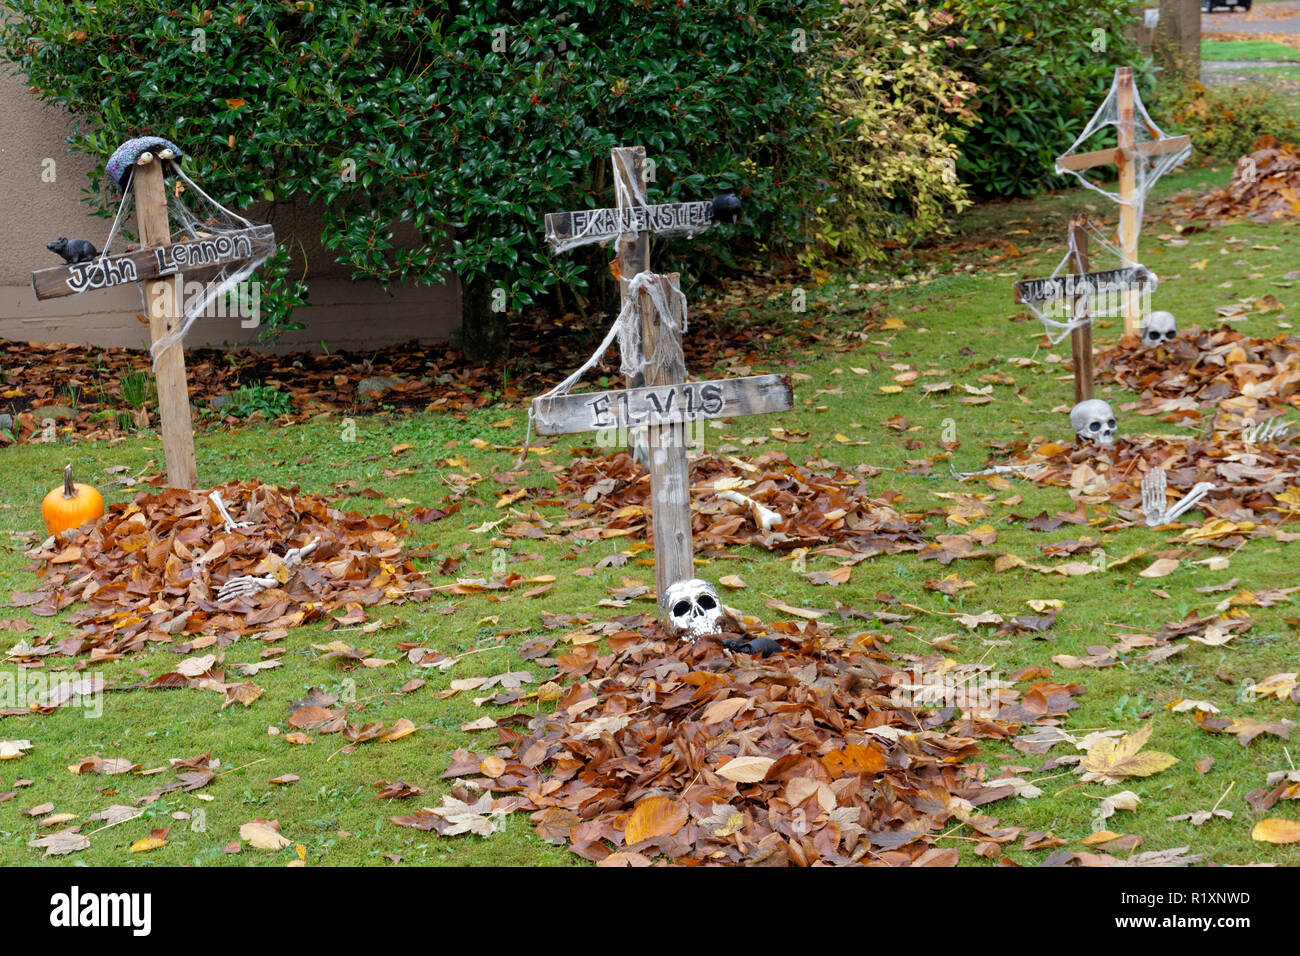 Graves And Skulls Halloween Decorations On The Front Lawn Of